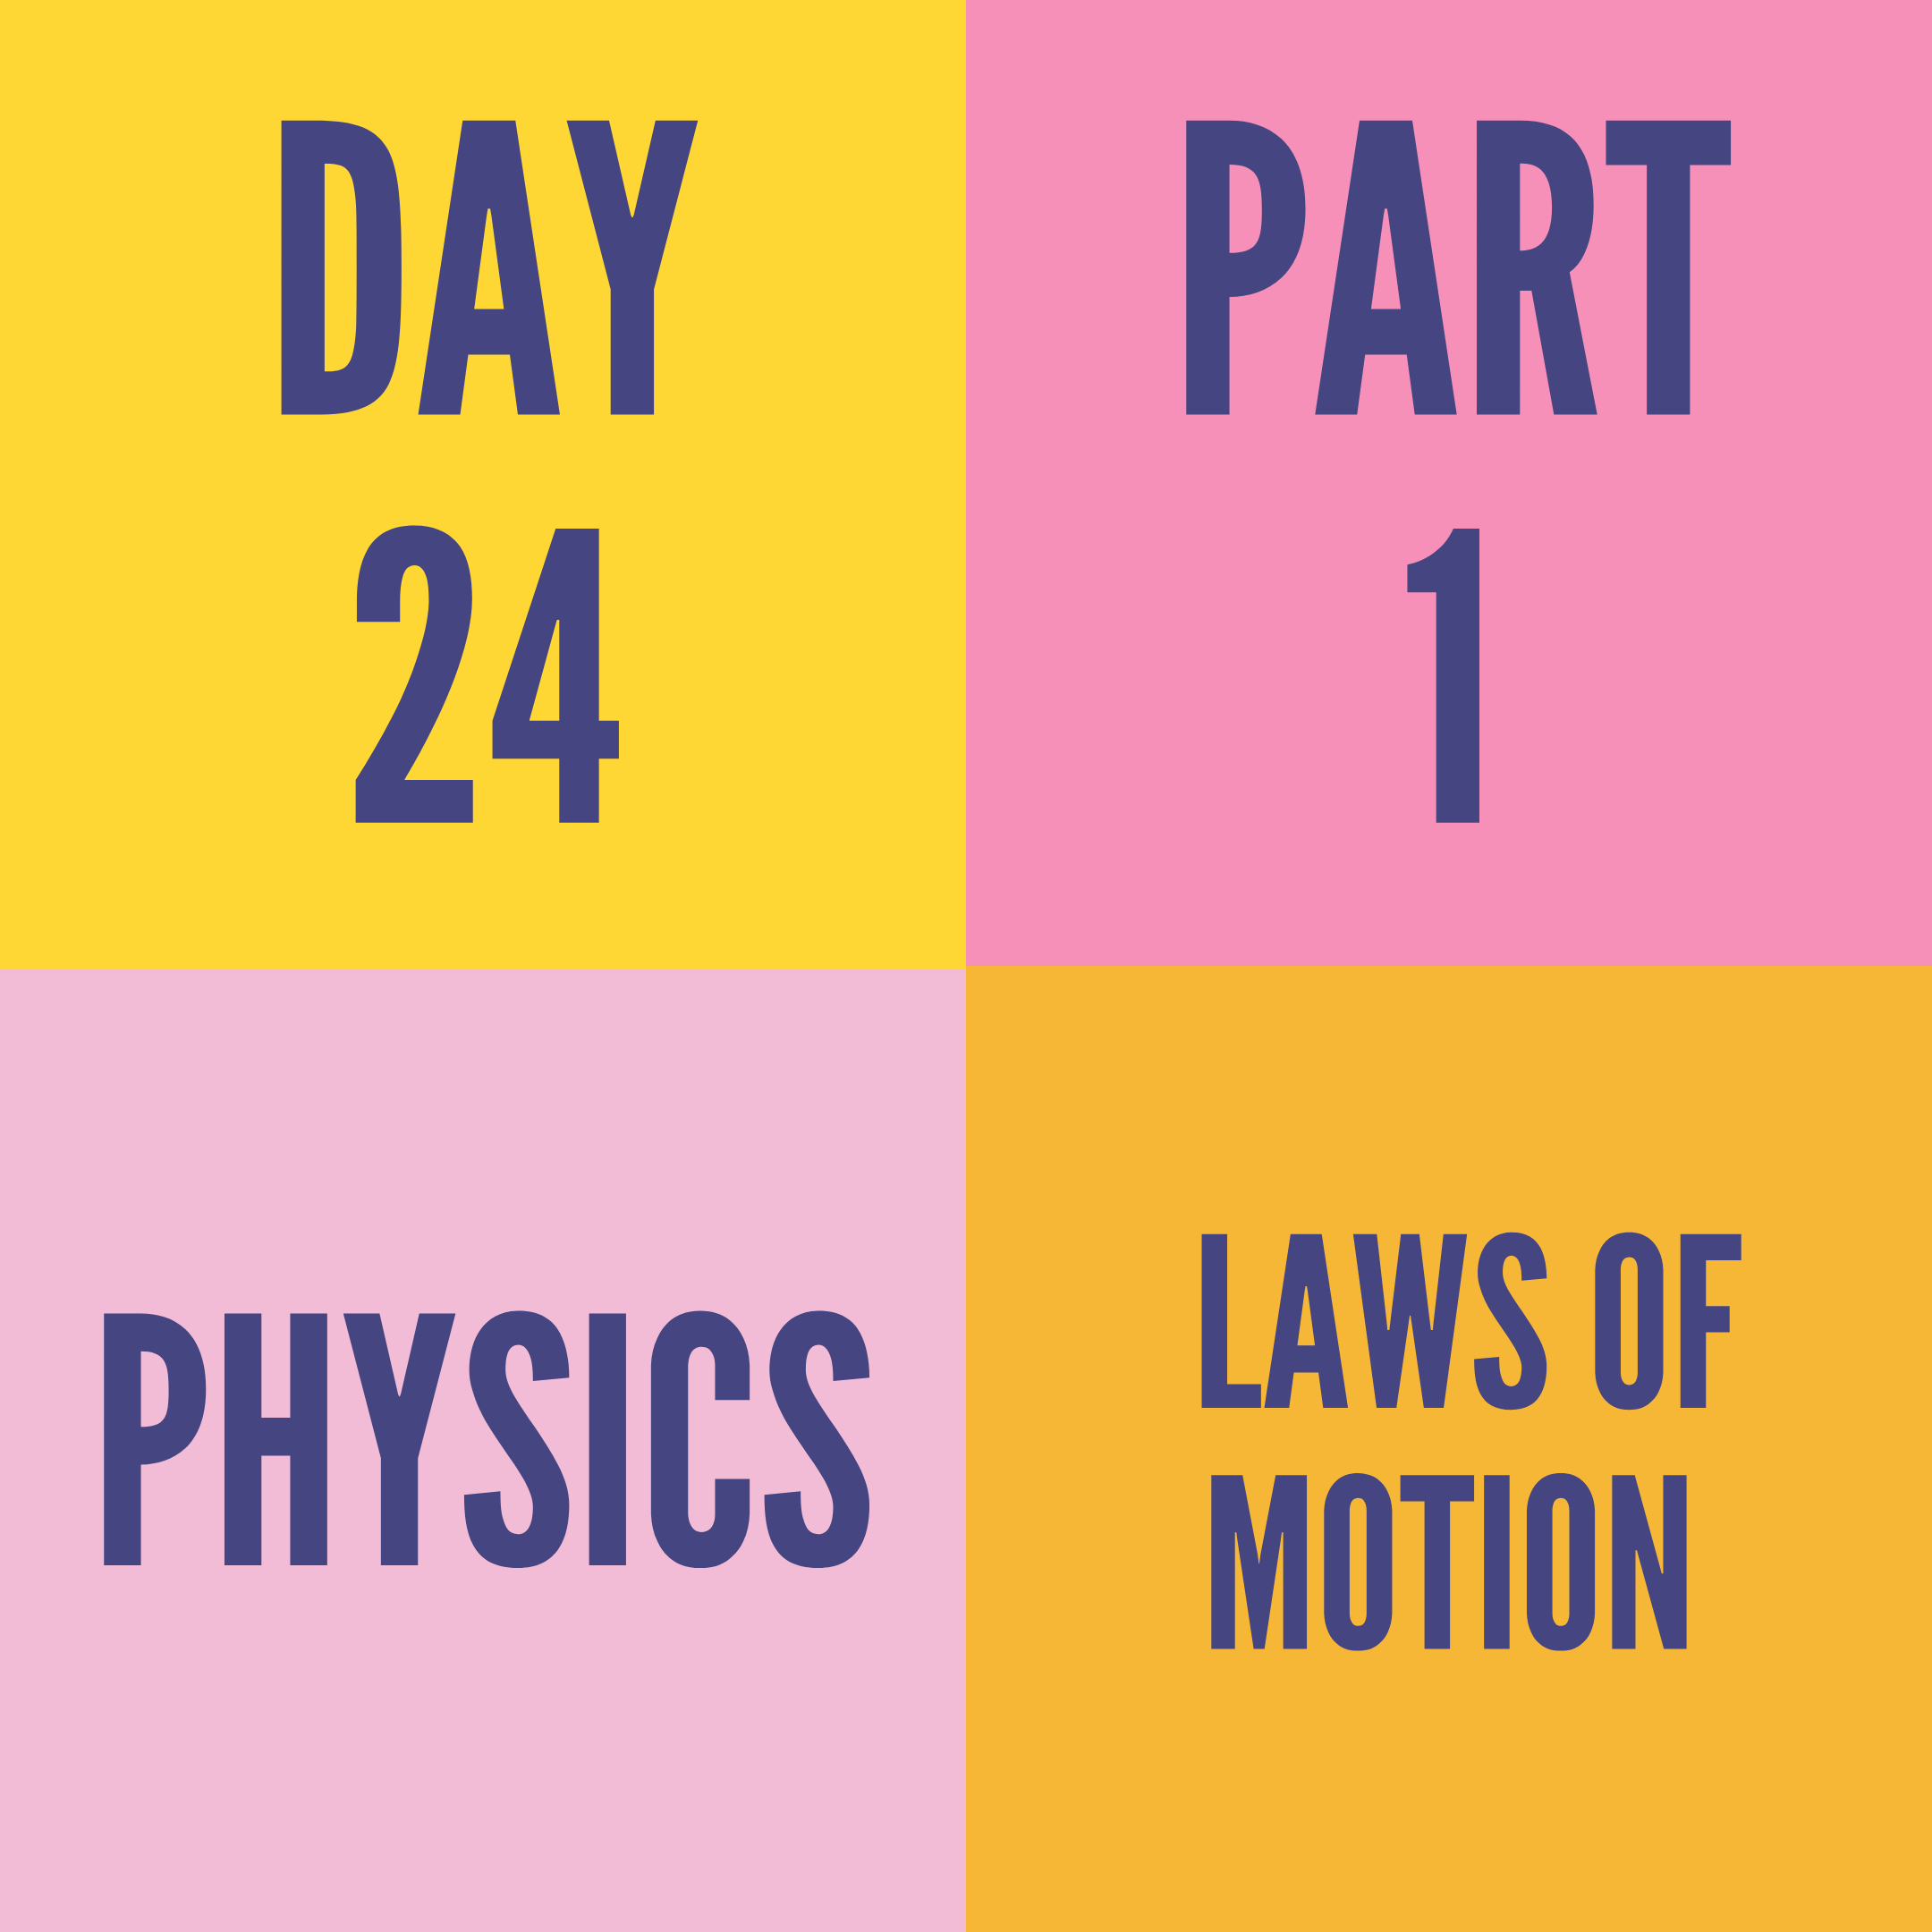 DAY-24 PART-1 LAWS OF MOTION